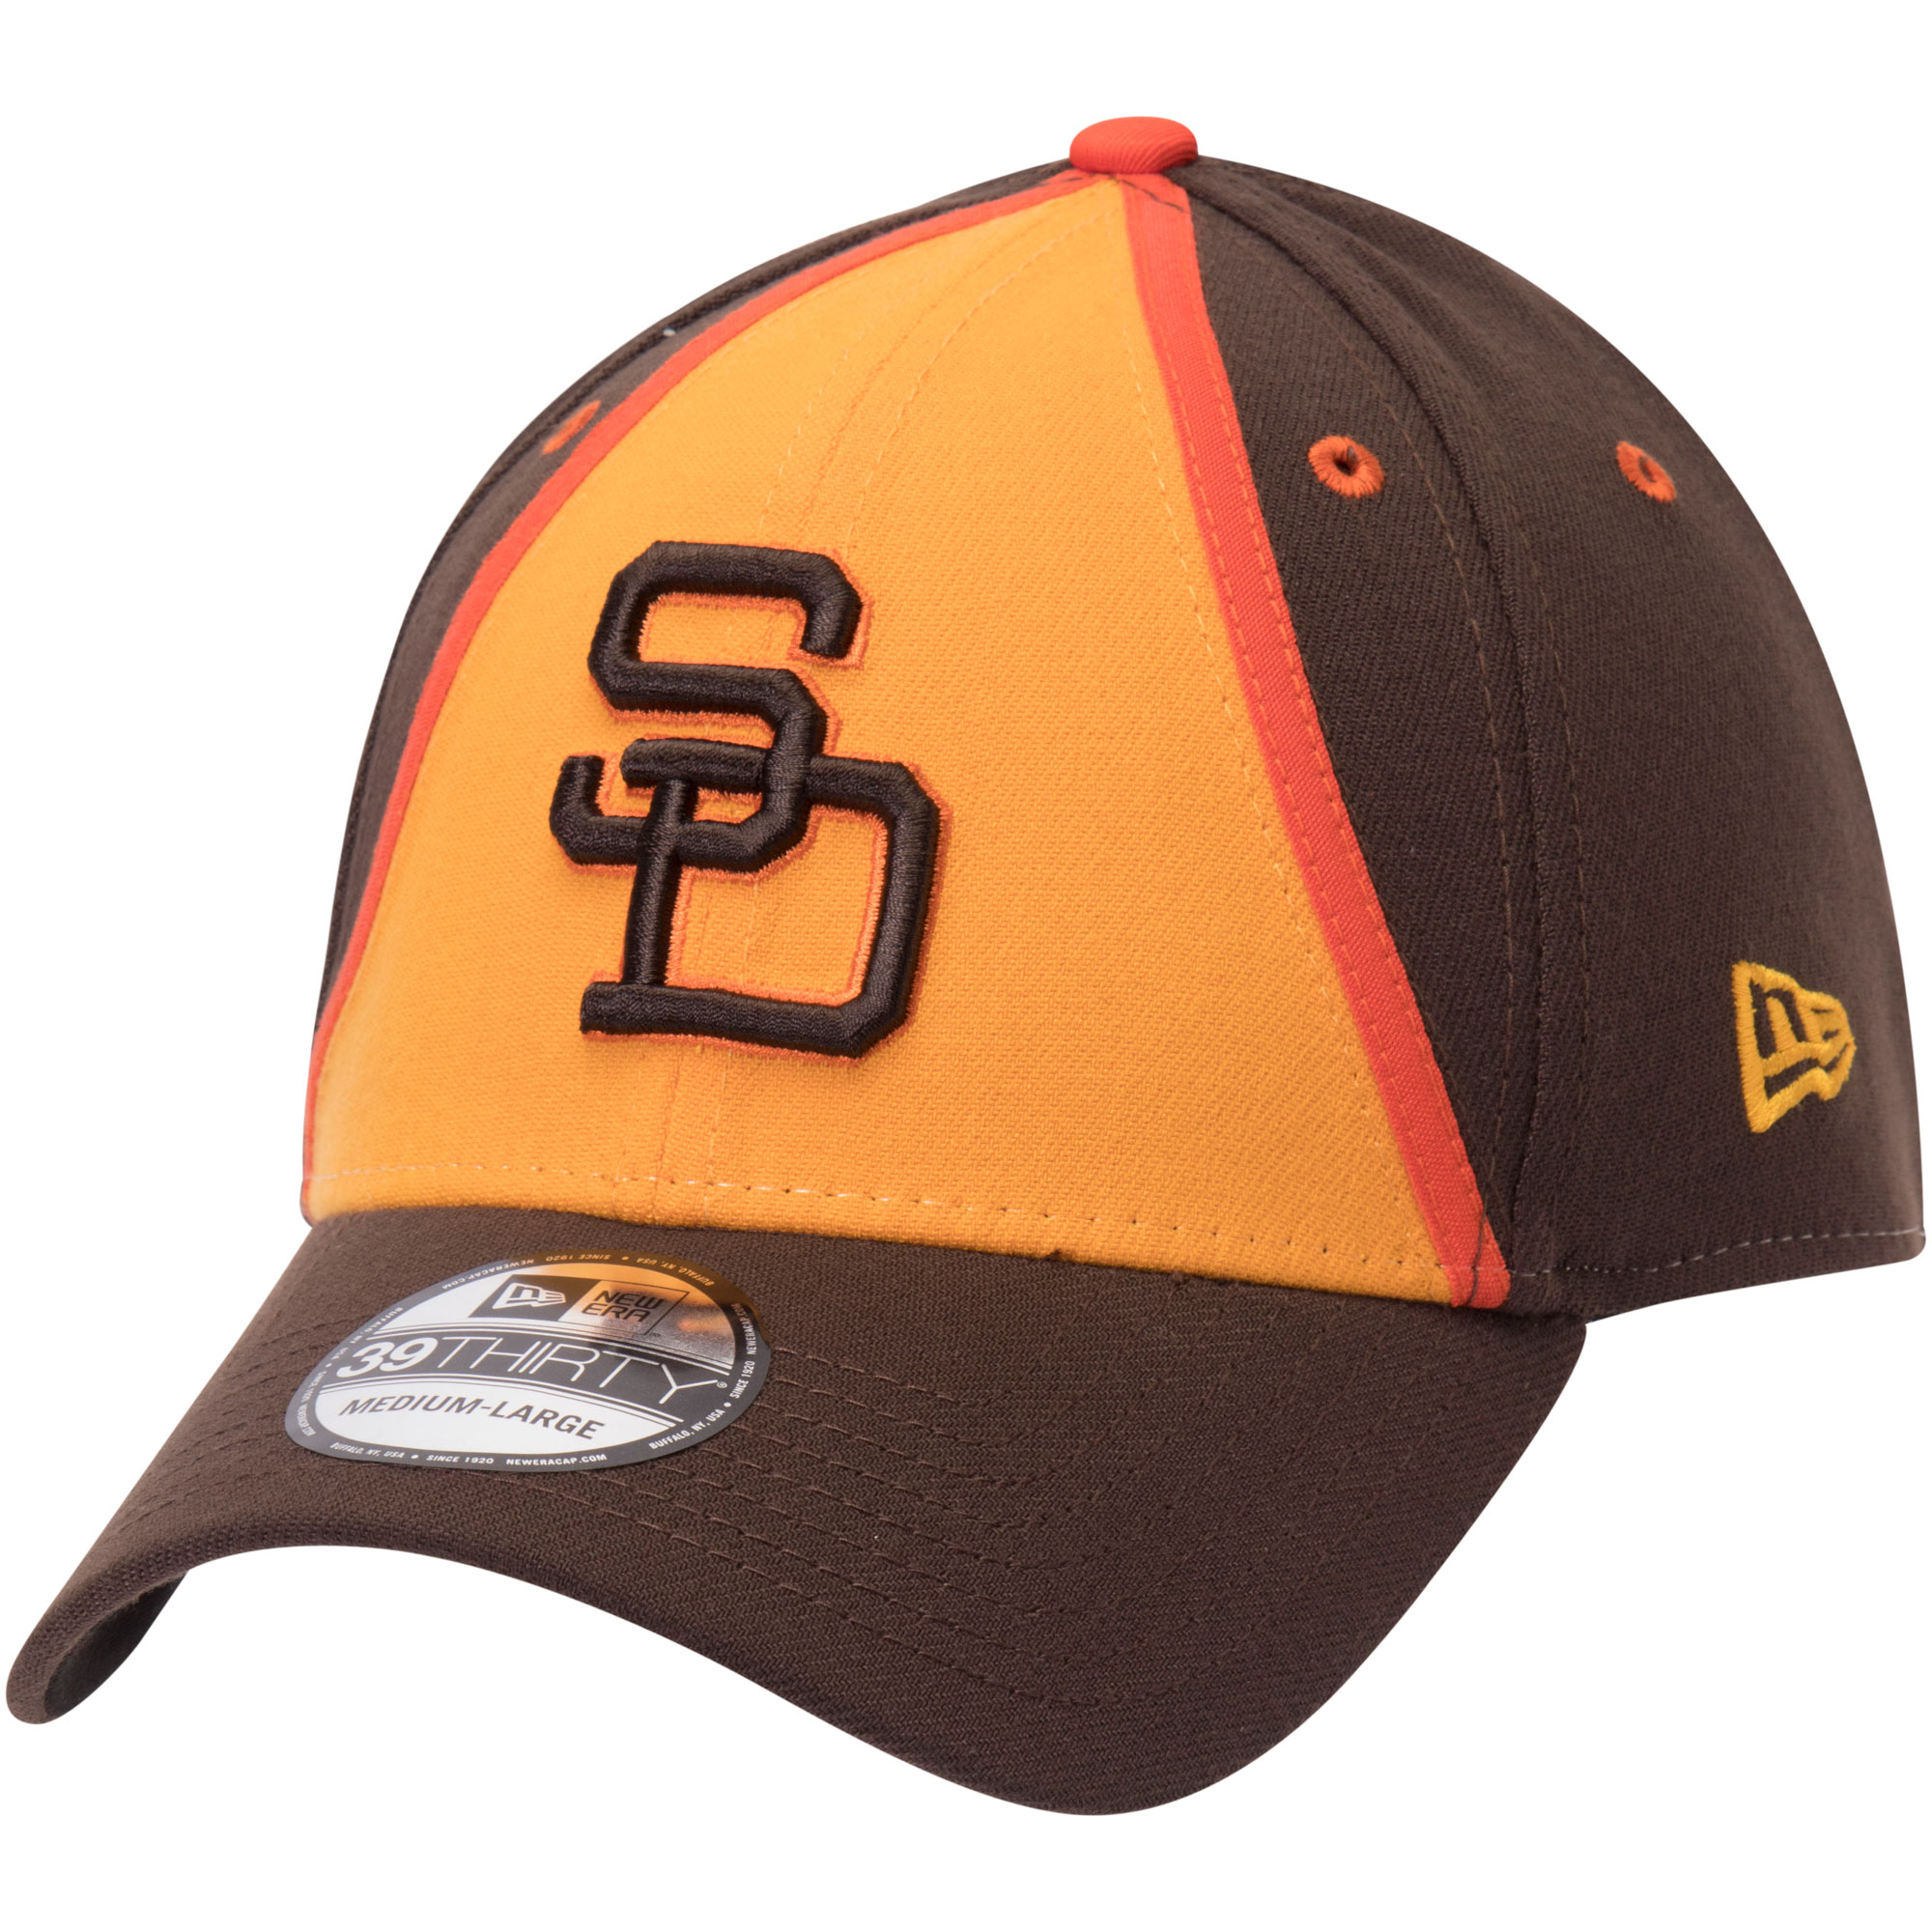 San Diego Padres New Era Cooperstown Collection Team Classic 39THIRTY Flex Hat - Gold/Brown